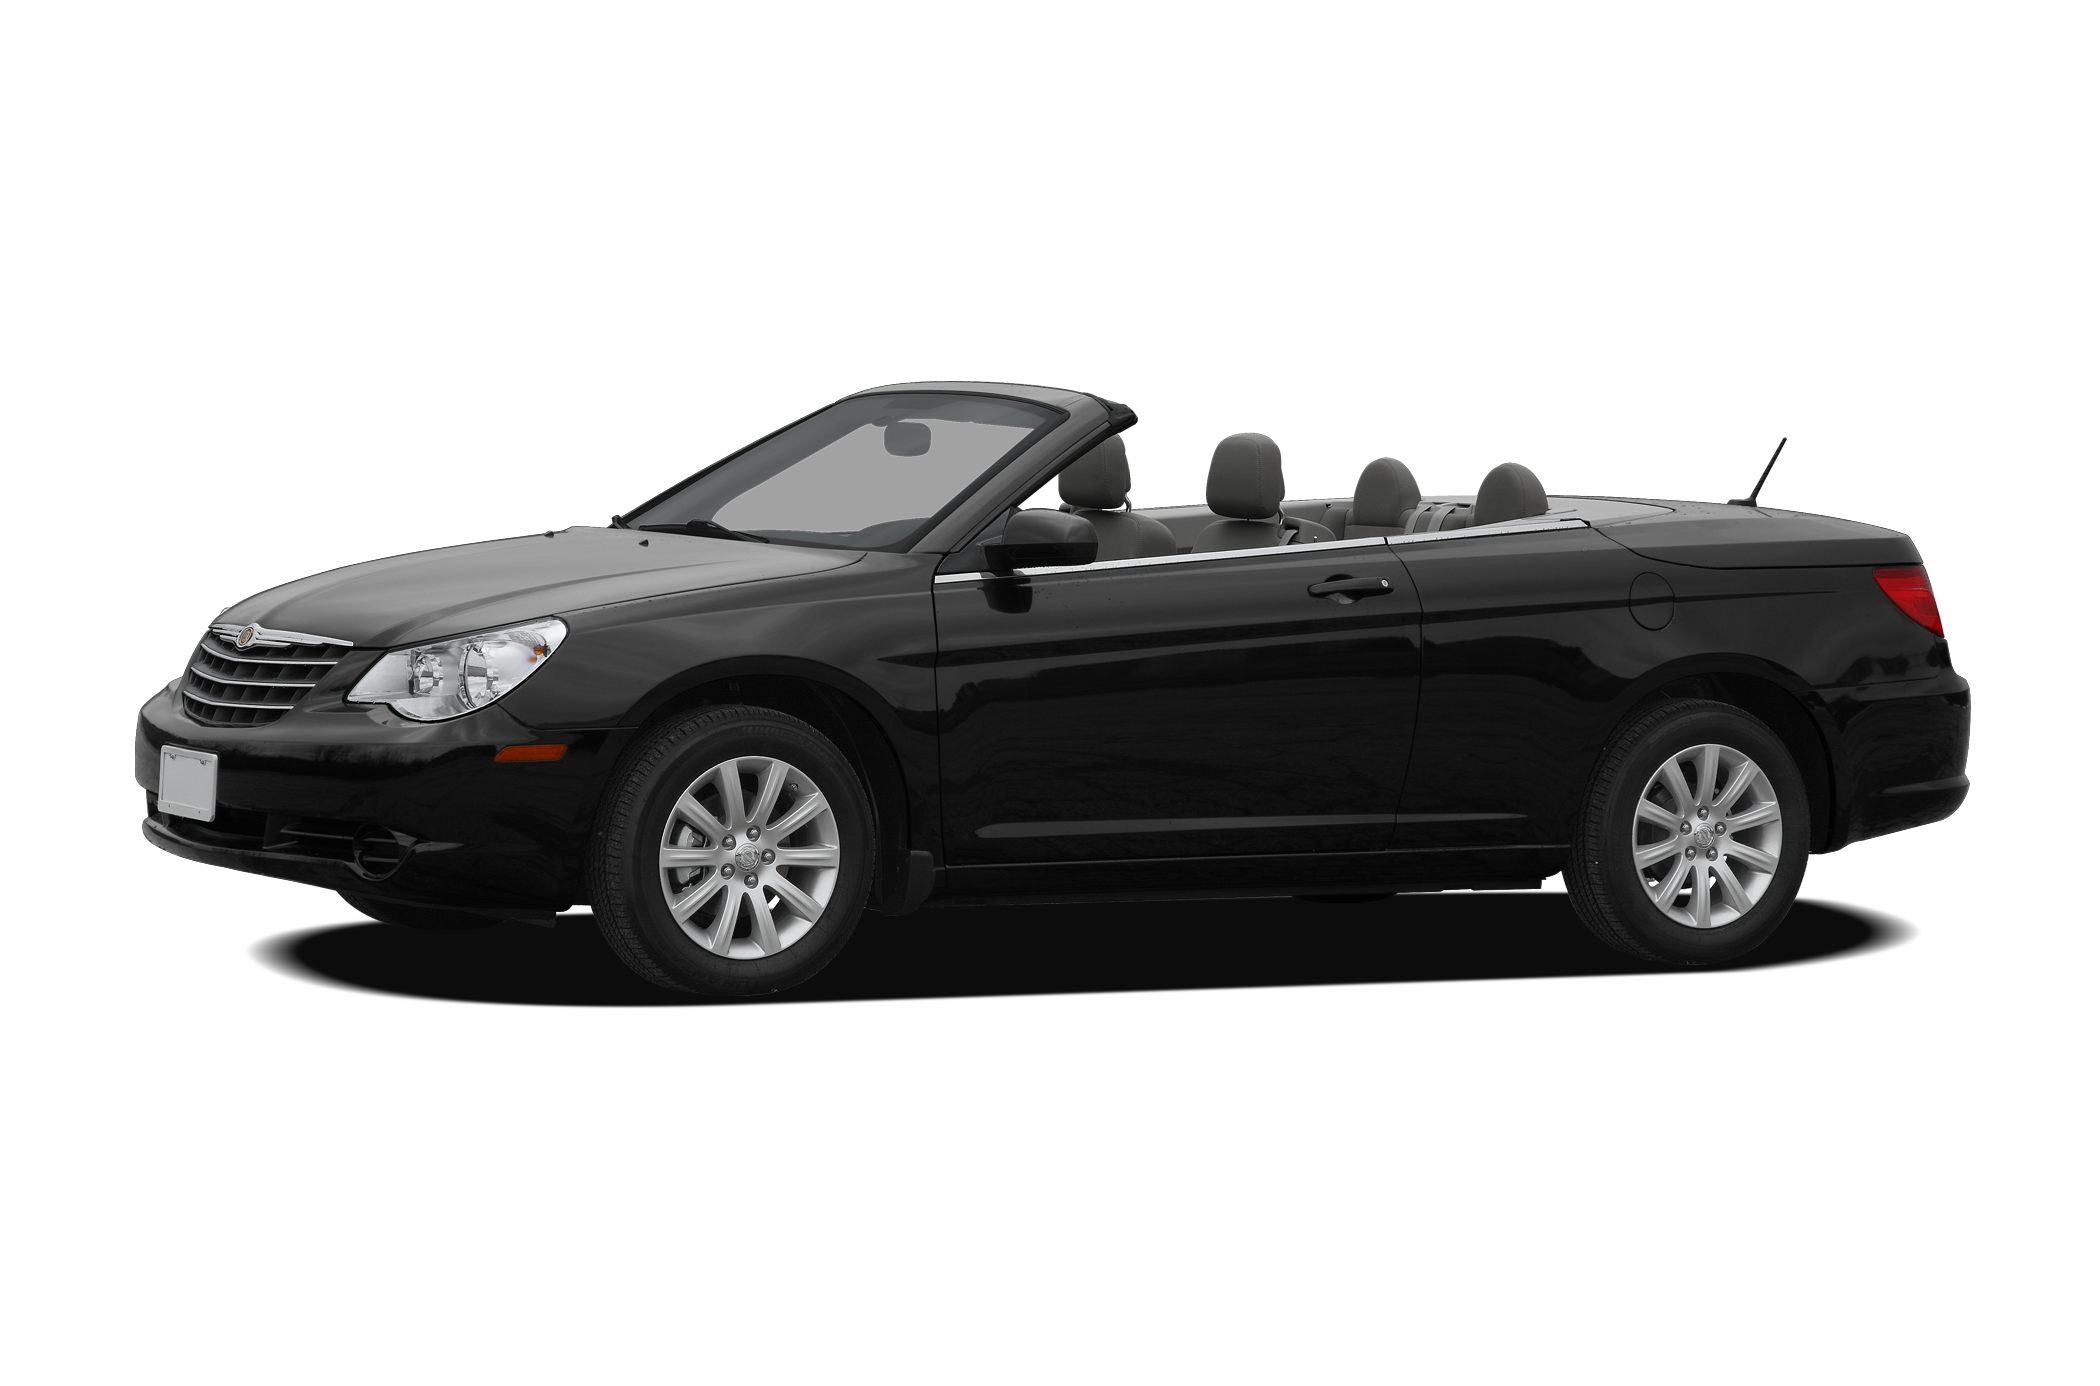 Chrysler Sebring News, Photos and Buying Information - Autoblog